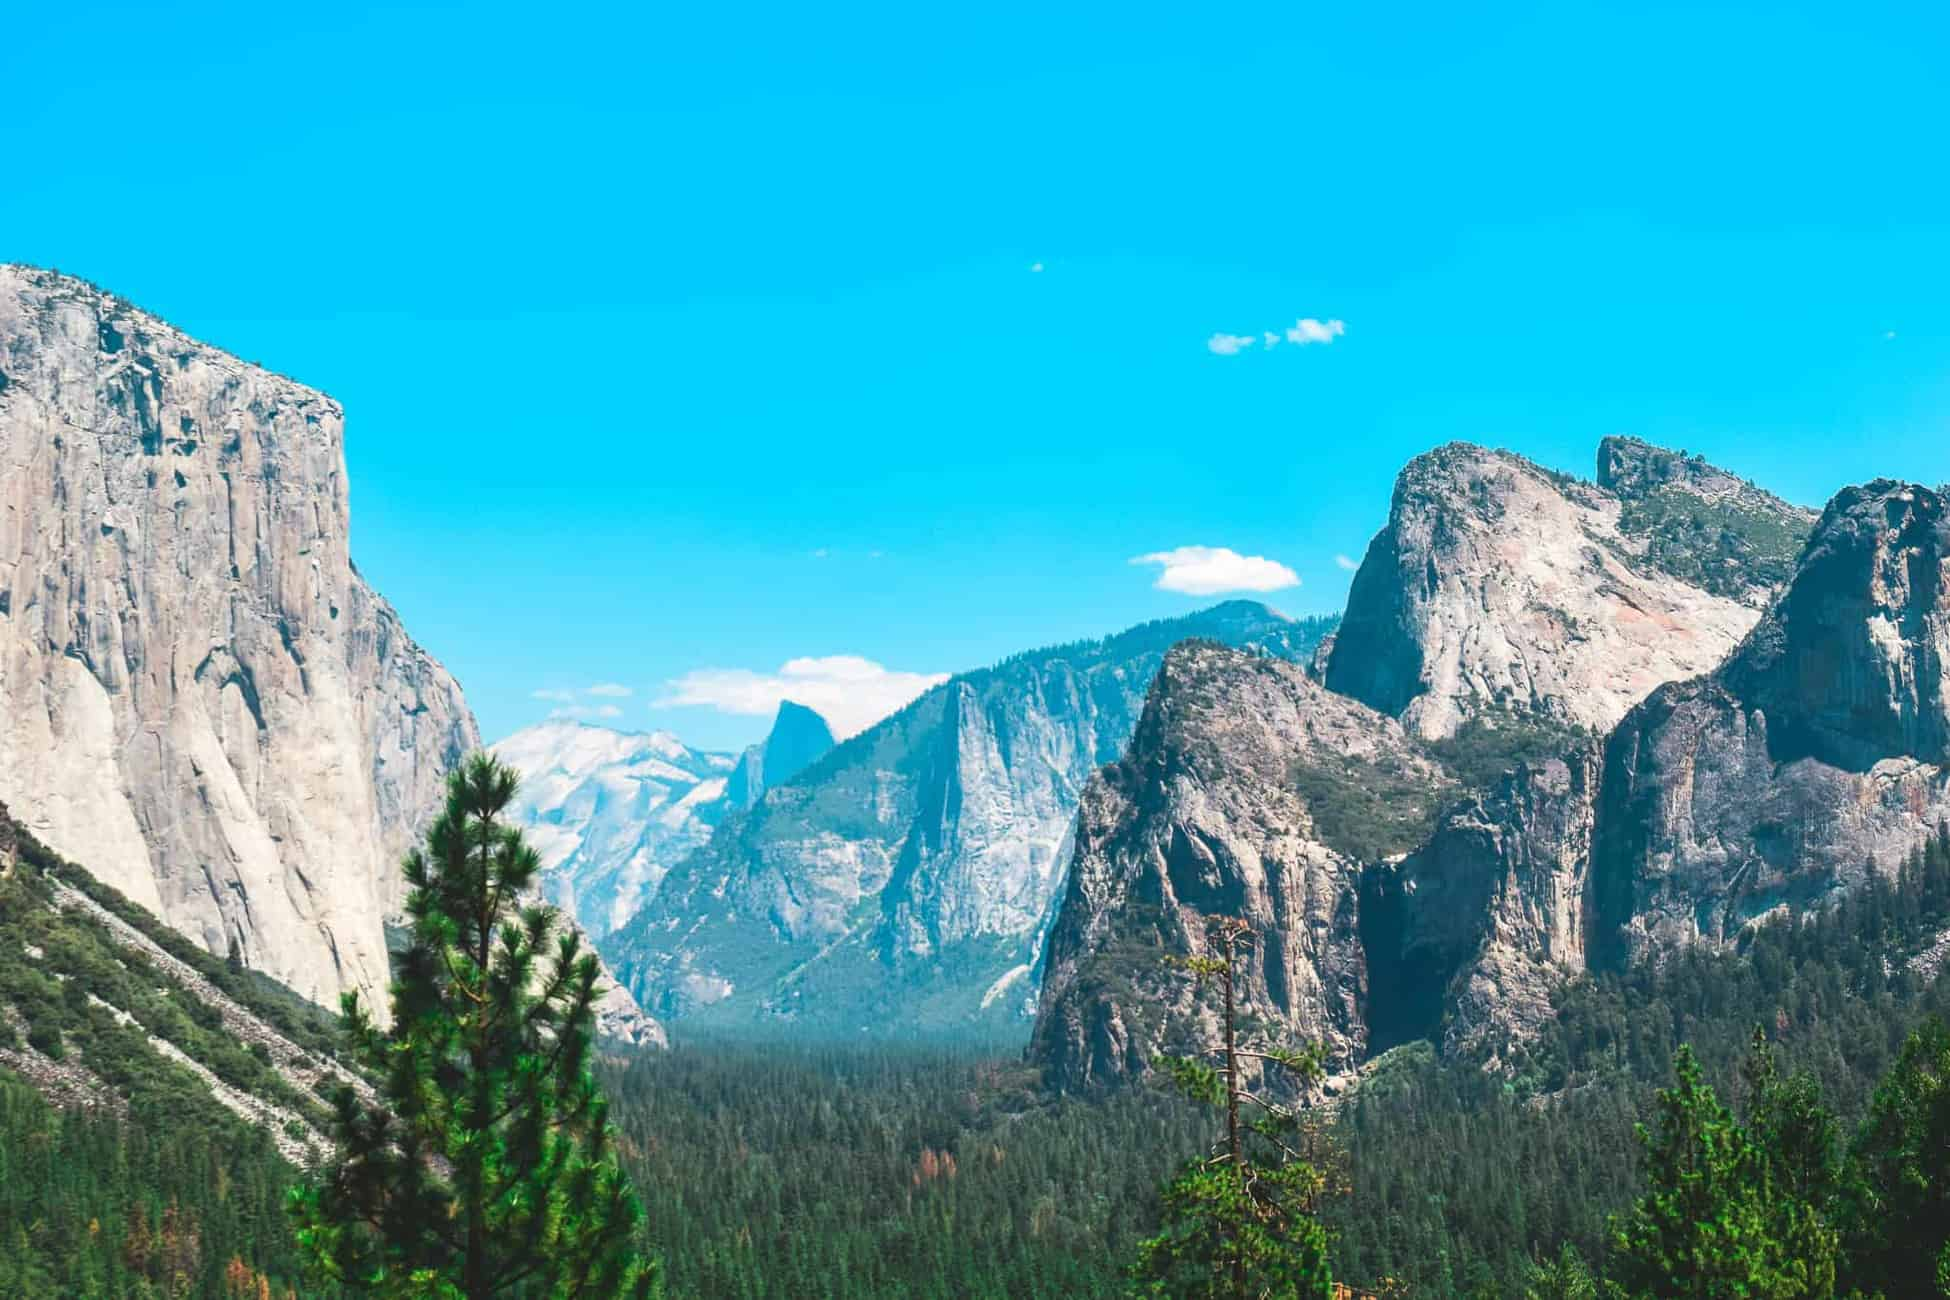 No California road trip would be complete without a visit to Yosemite